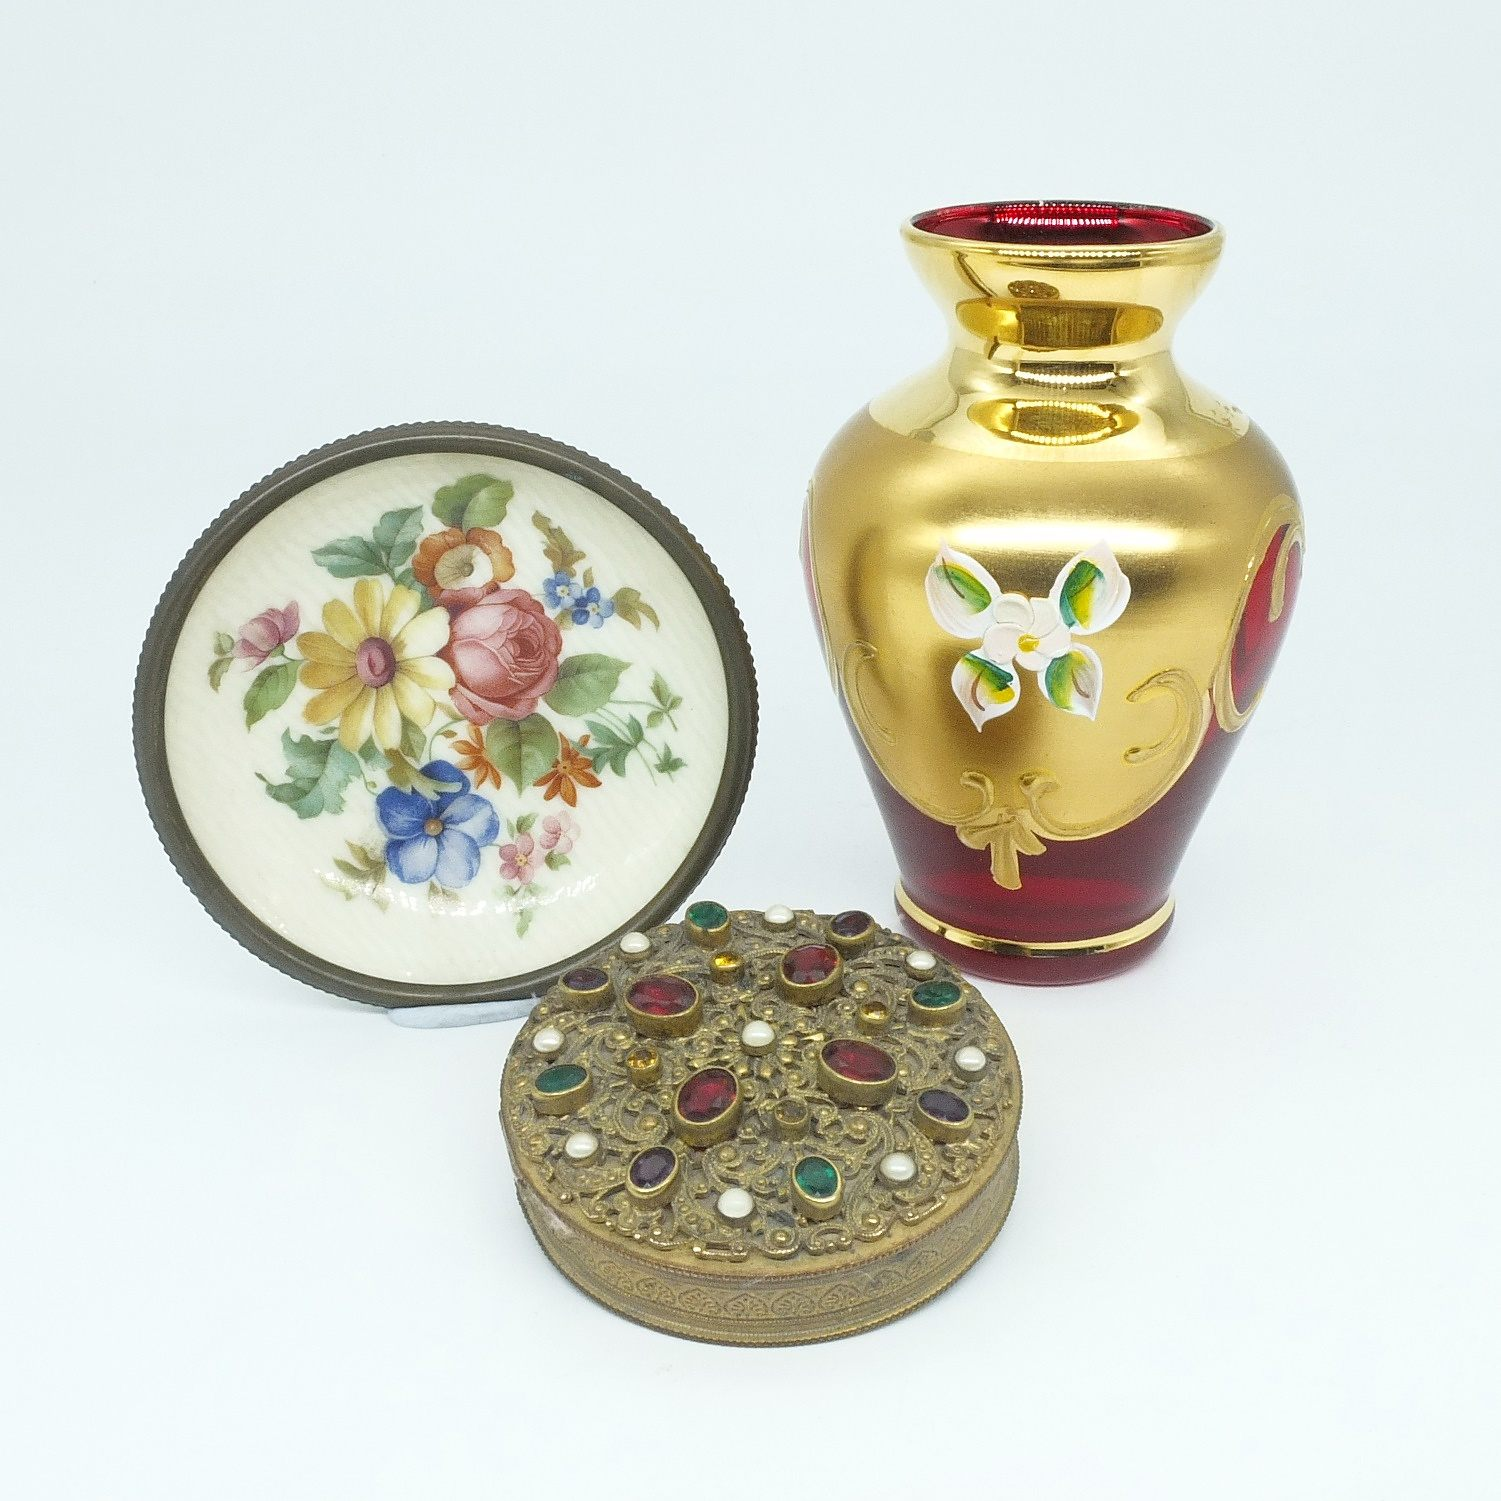 'Decorative Antique Compact with Ostrich Feather Pad, Hand Painted and Gilded Ruby Glass Vase and a Small Floral Porcelain Dish'